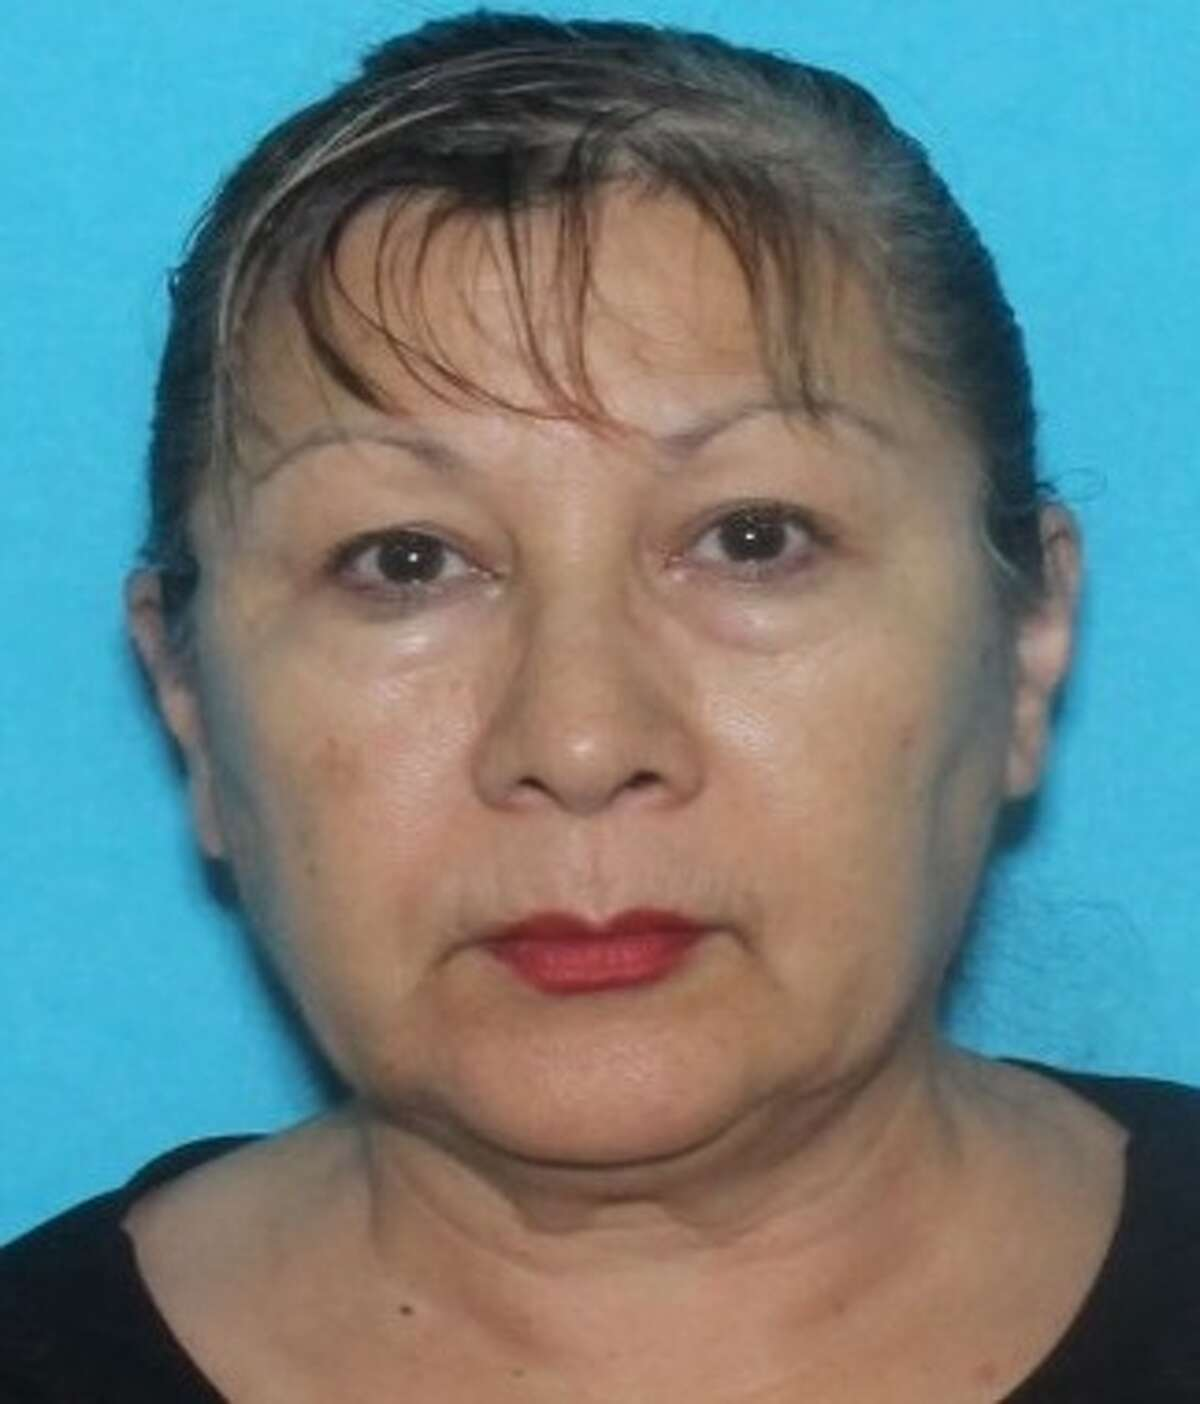 Yolanda Rodriguez Ramirez, 59, of Brownsville, was arrested Tuesday, Oct. 6. She is charged with engaging in organized criminal activity.